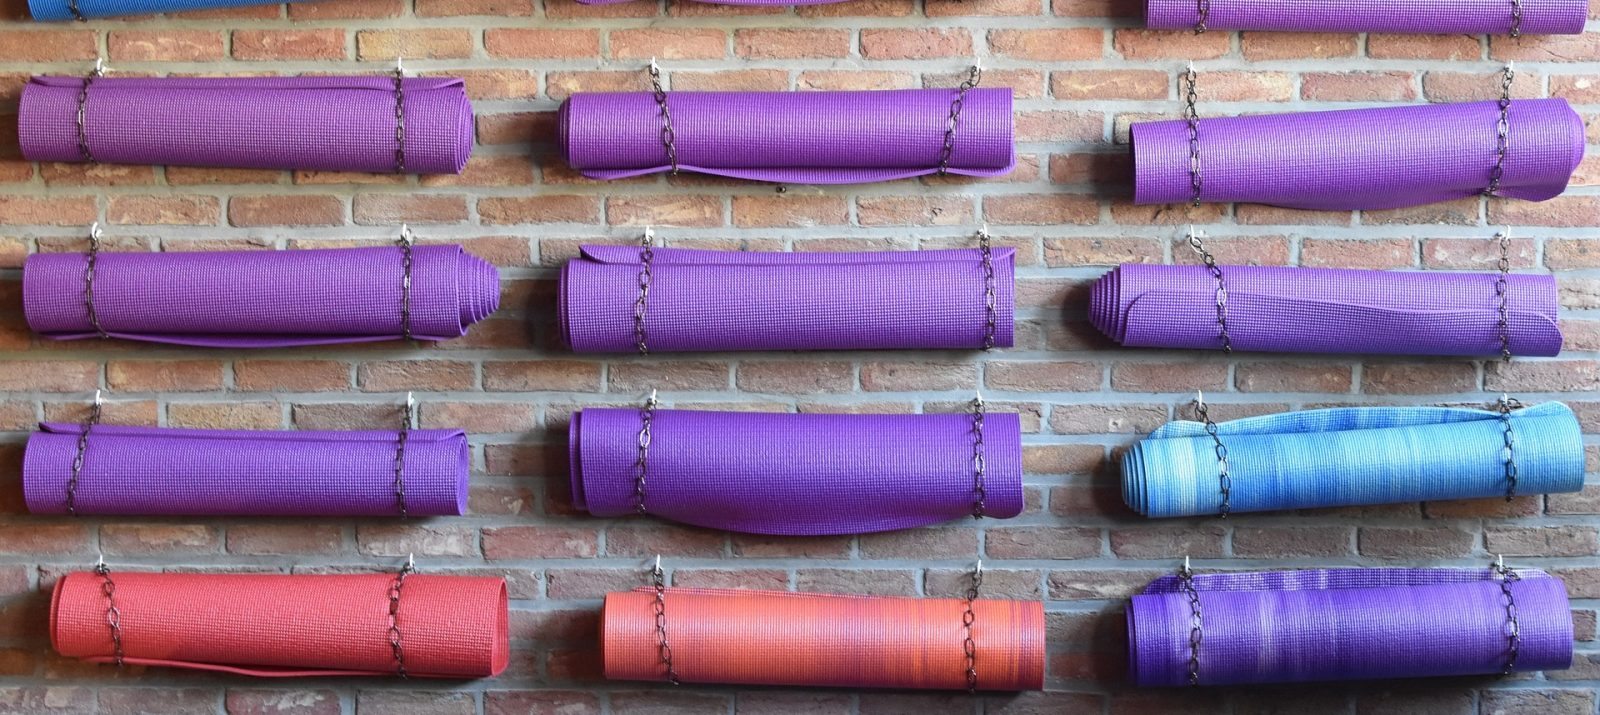 How To Clean Dry And Store Your Yoga Mat Like An Expert